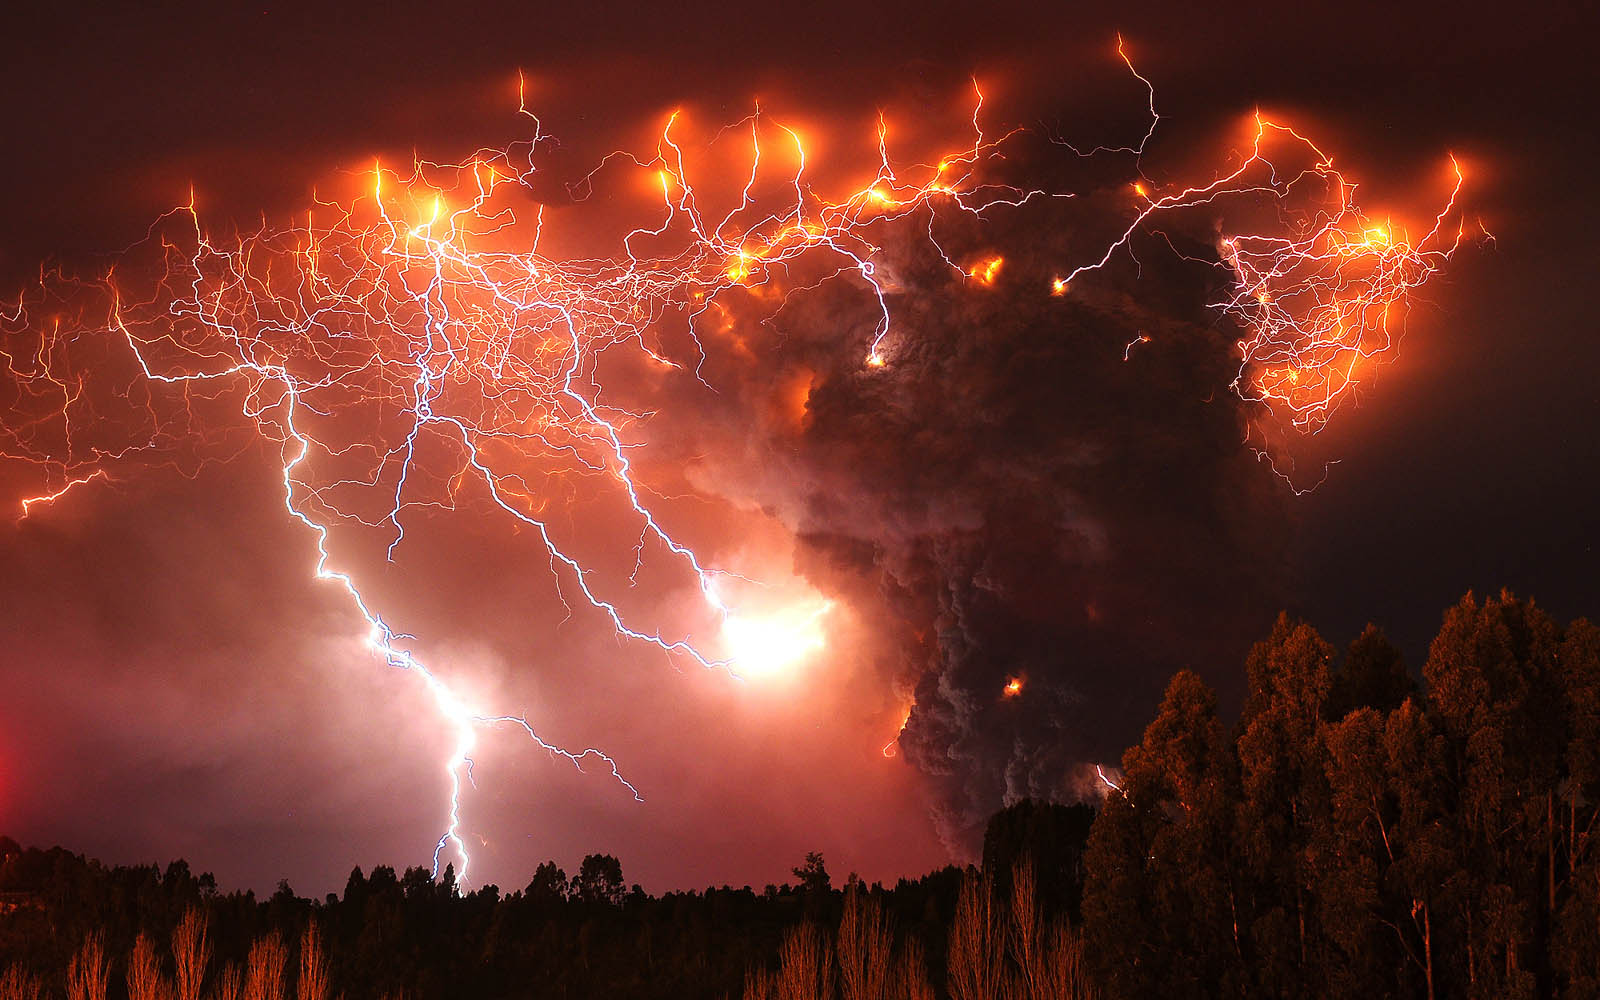 Tag Volcano Erupts Photos Wallpapers Images Pictures and 1600x1000